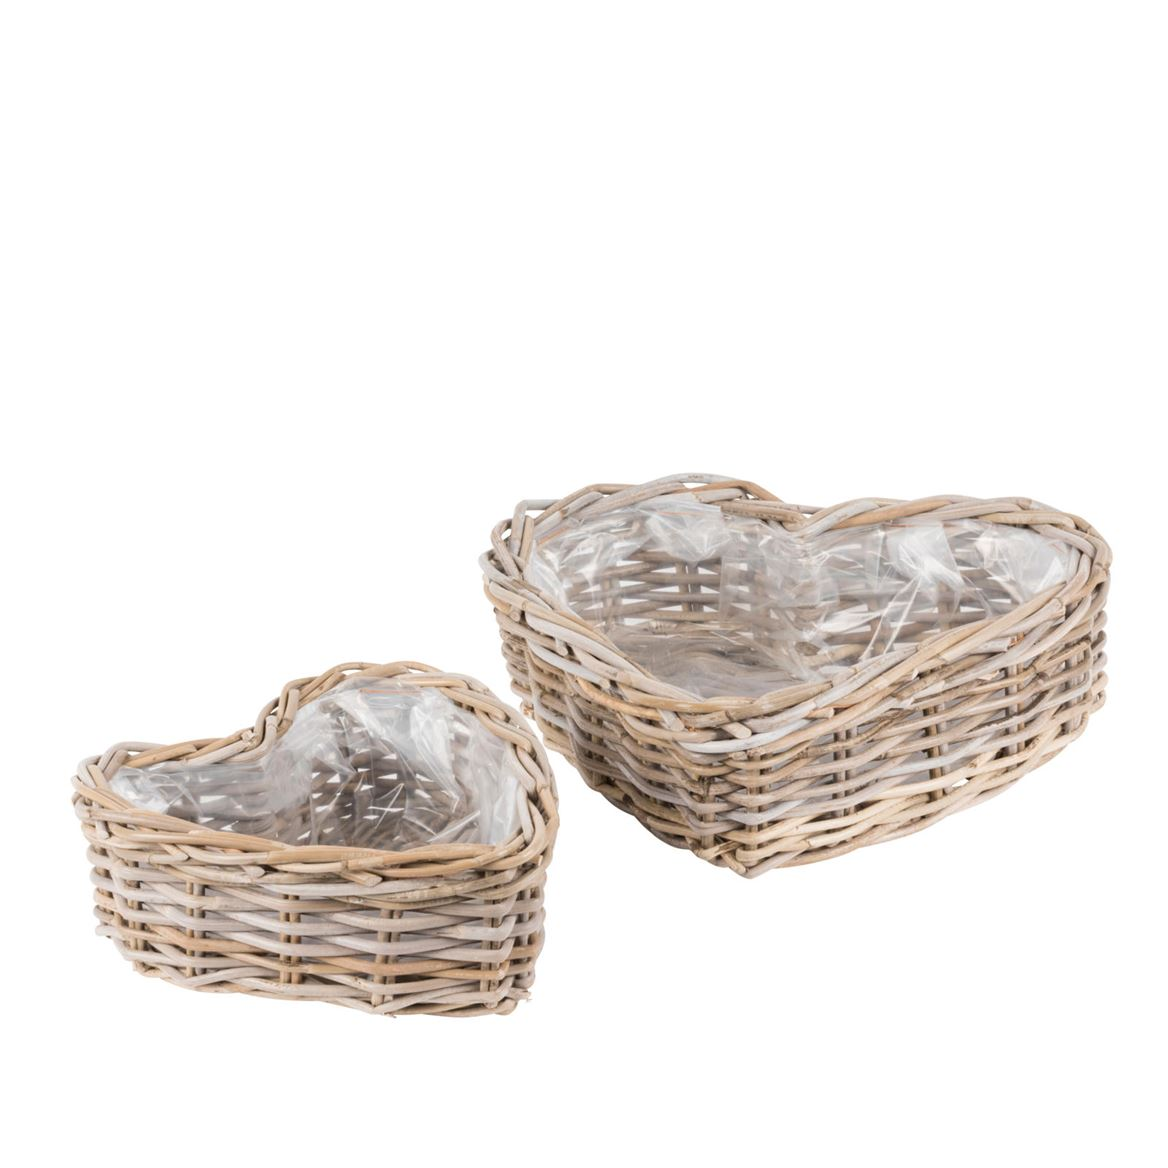 heart panier produits feelgood pour la maison et le jardin chez casa. Black Bedroom Furniture Sets. Home Design Ideas